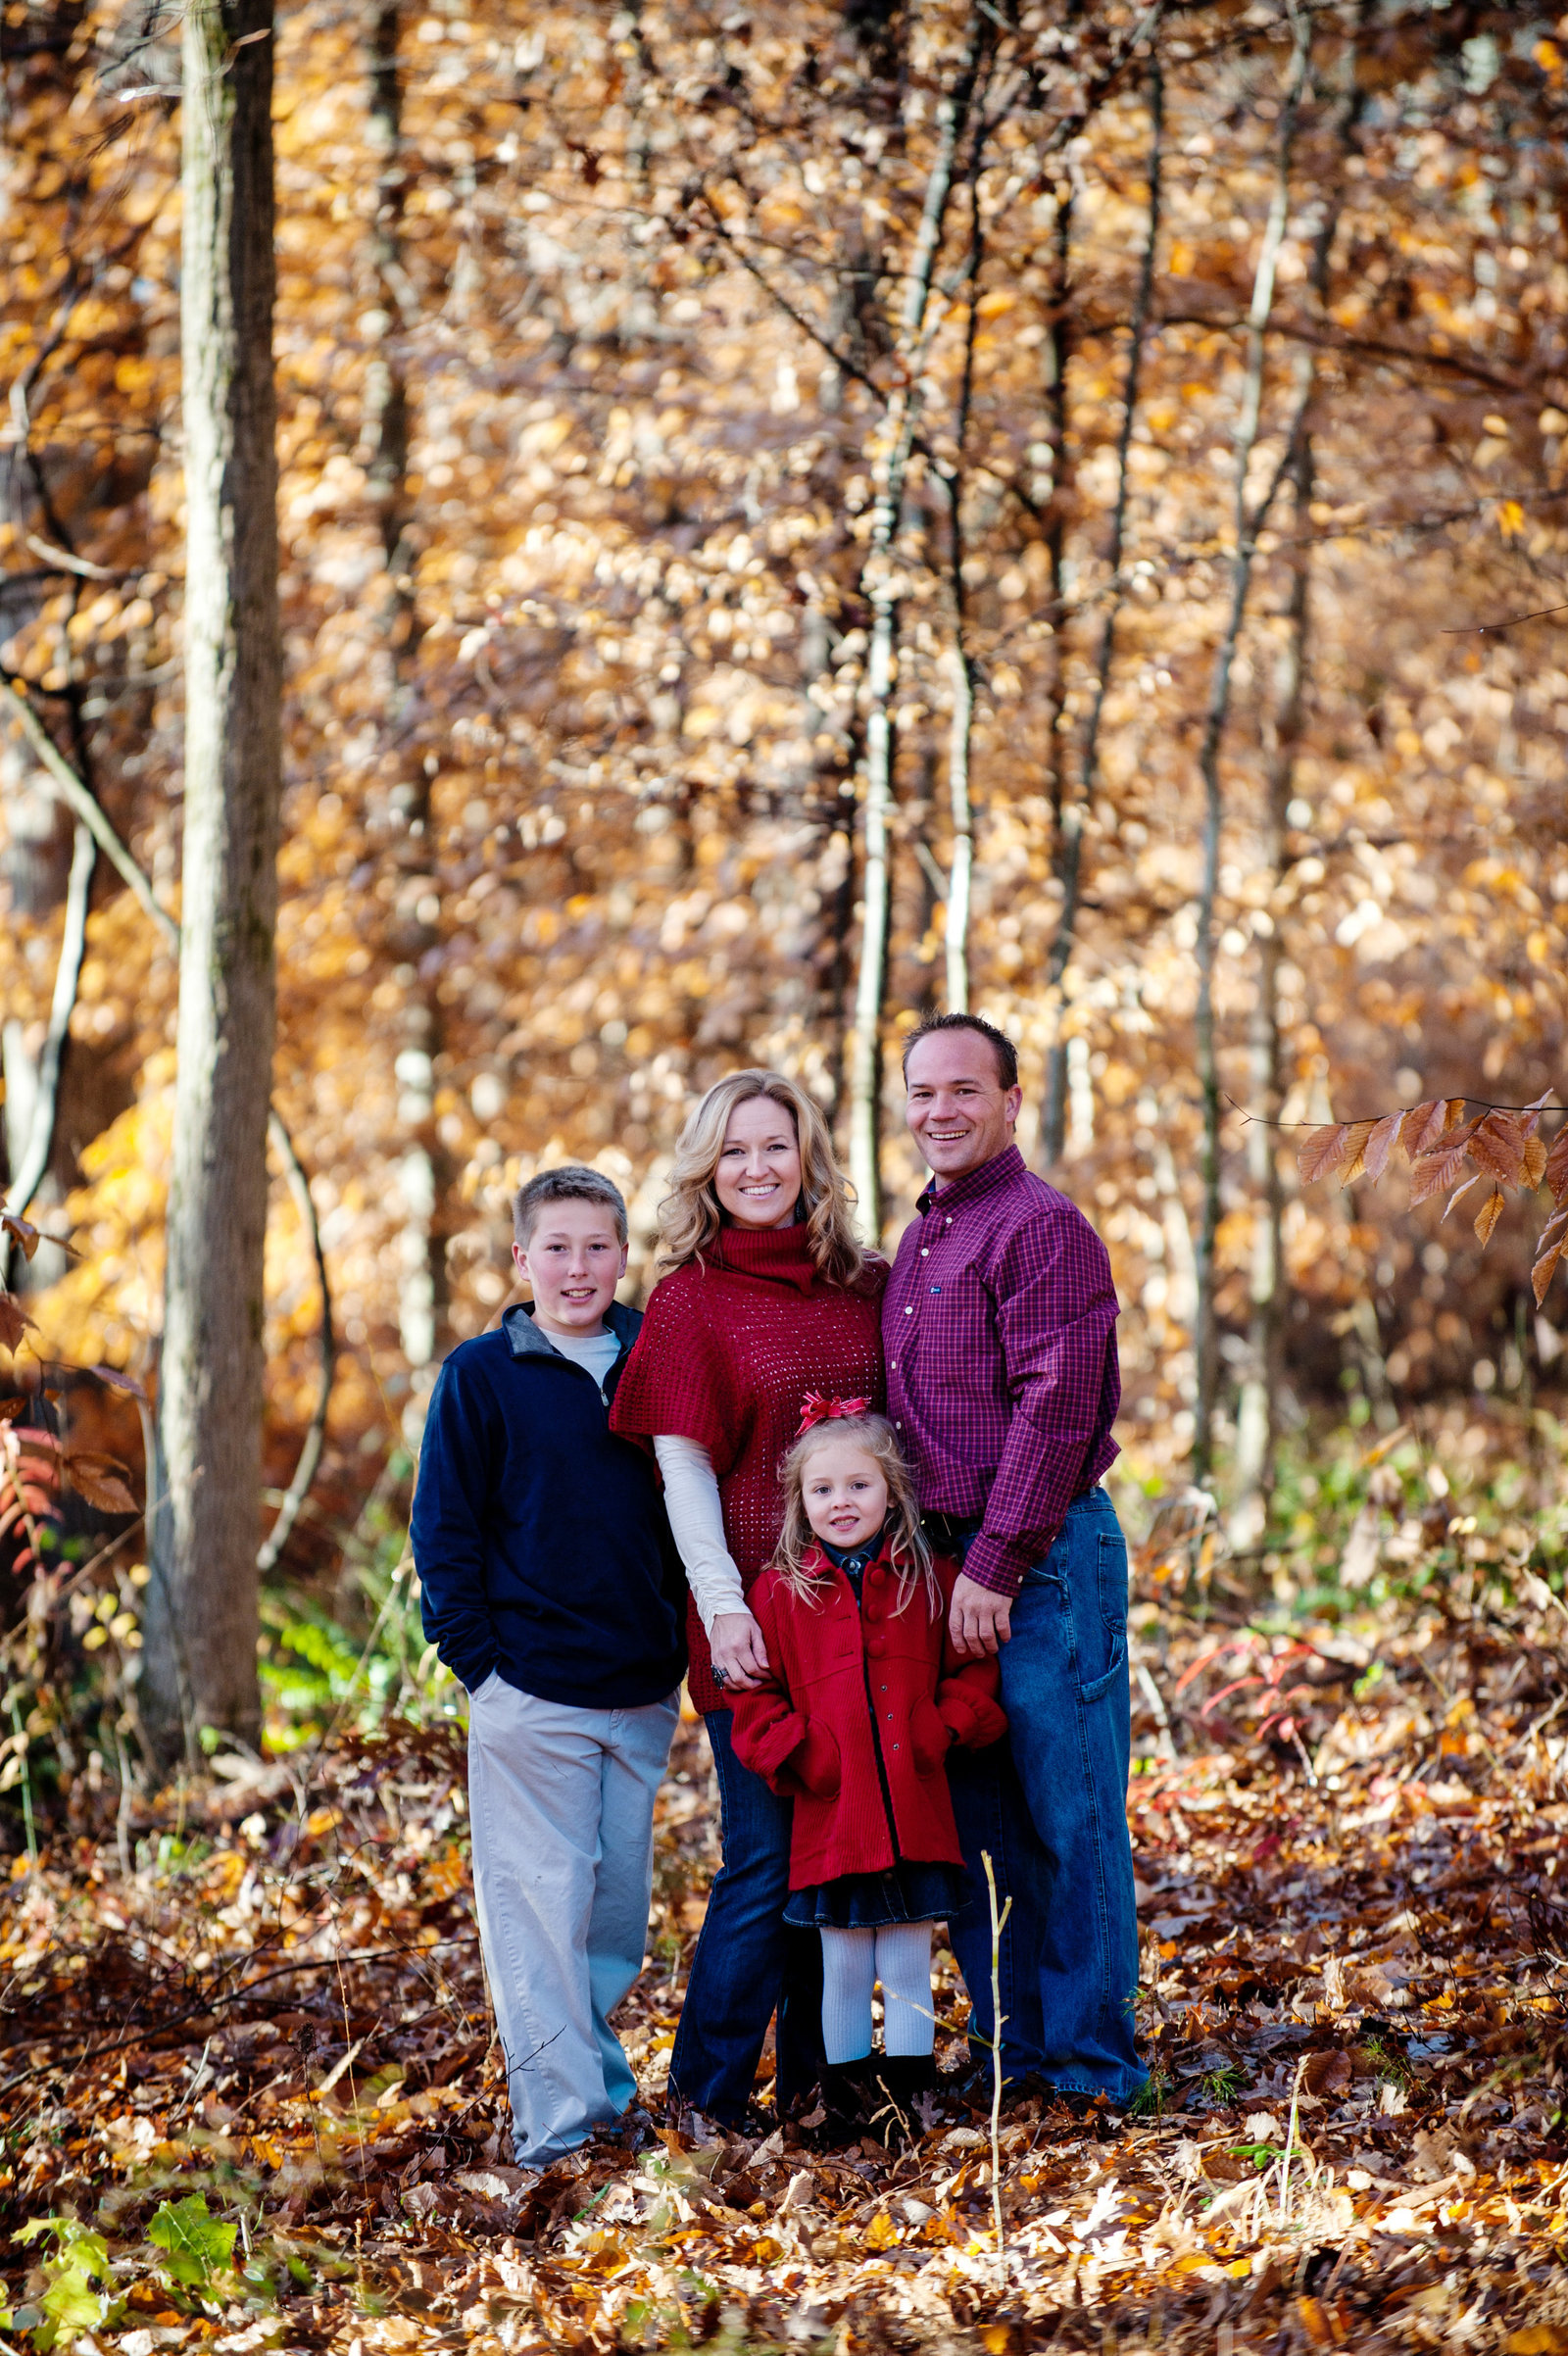 a family of four pose together in a forest in autumn